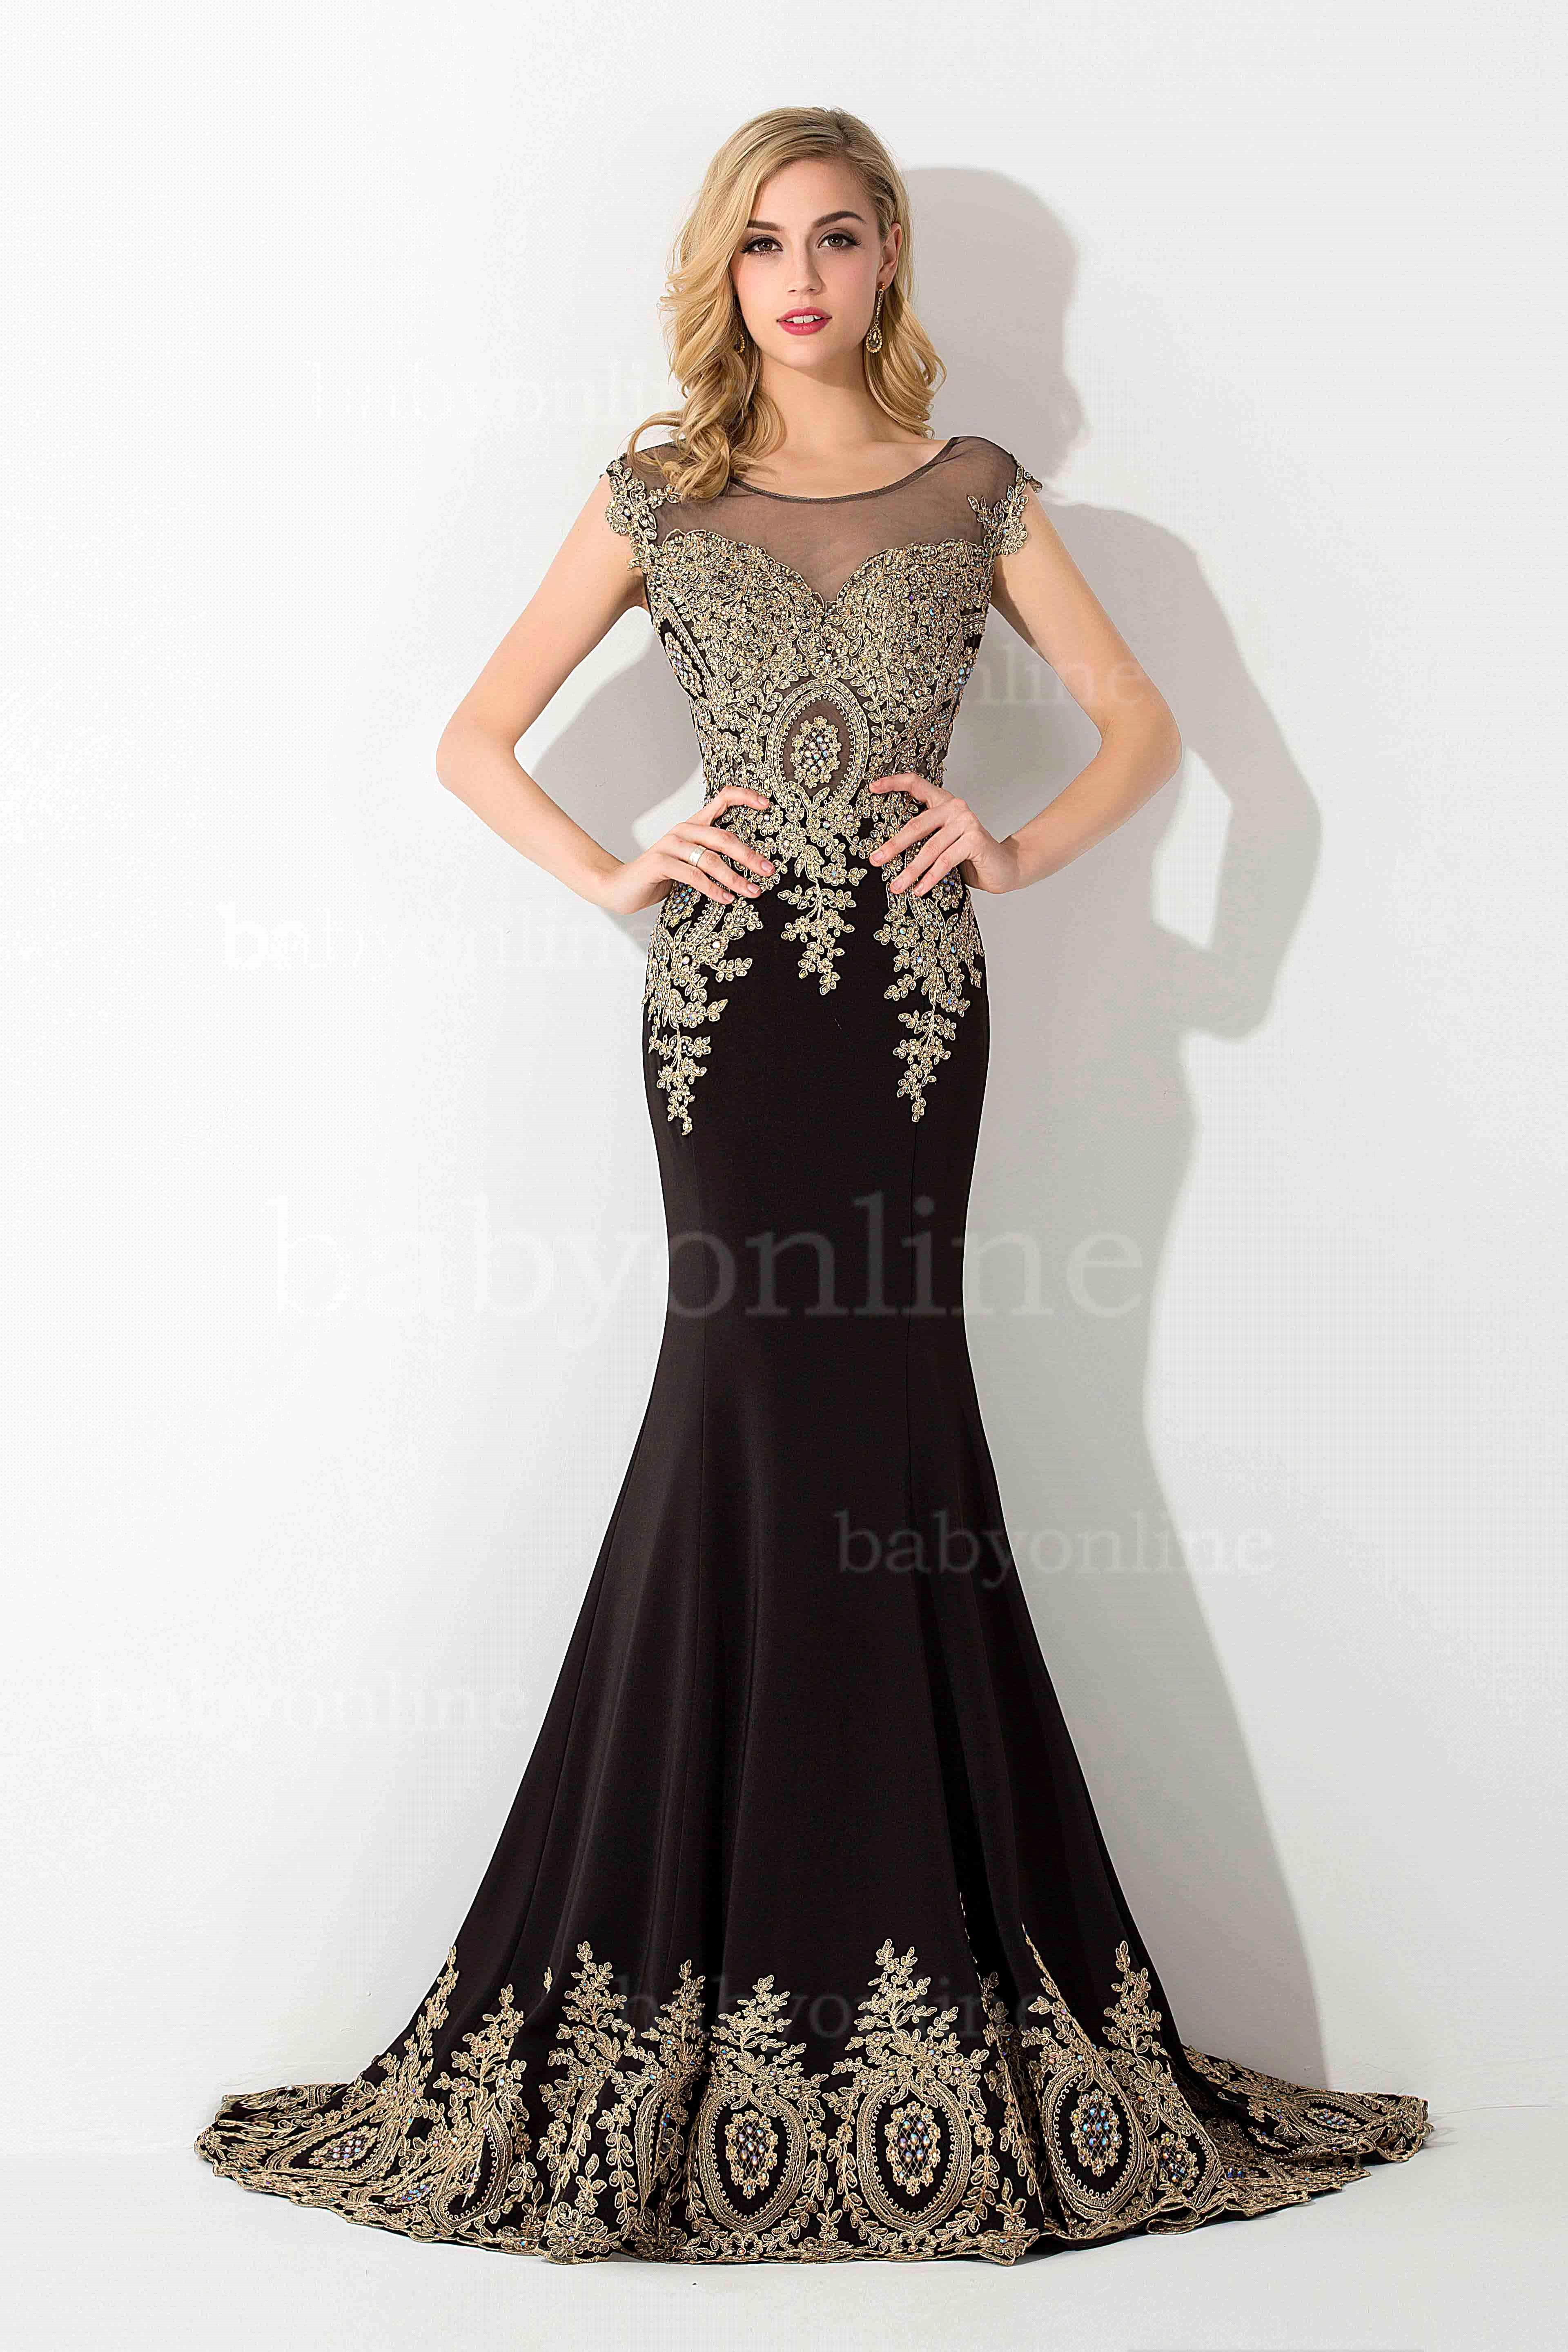 M jourdelle prom dresses 4 in one